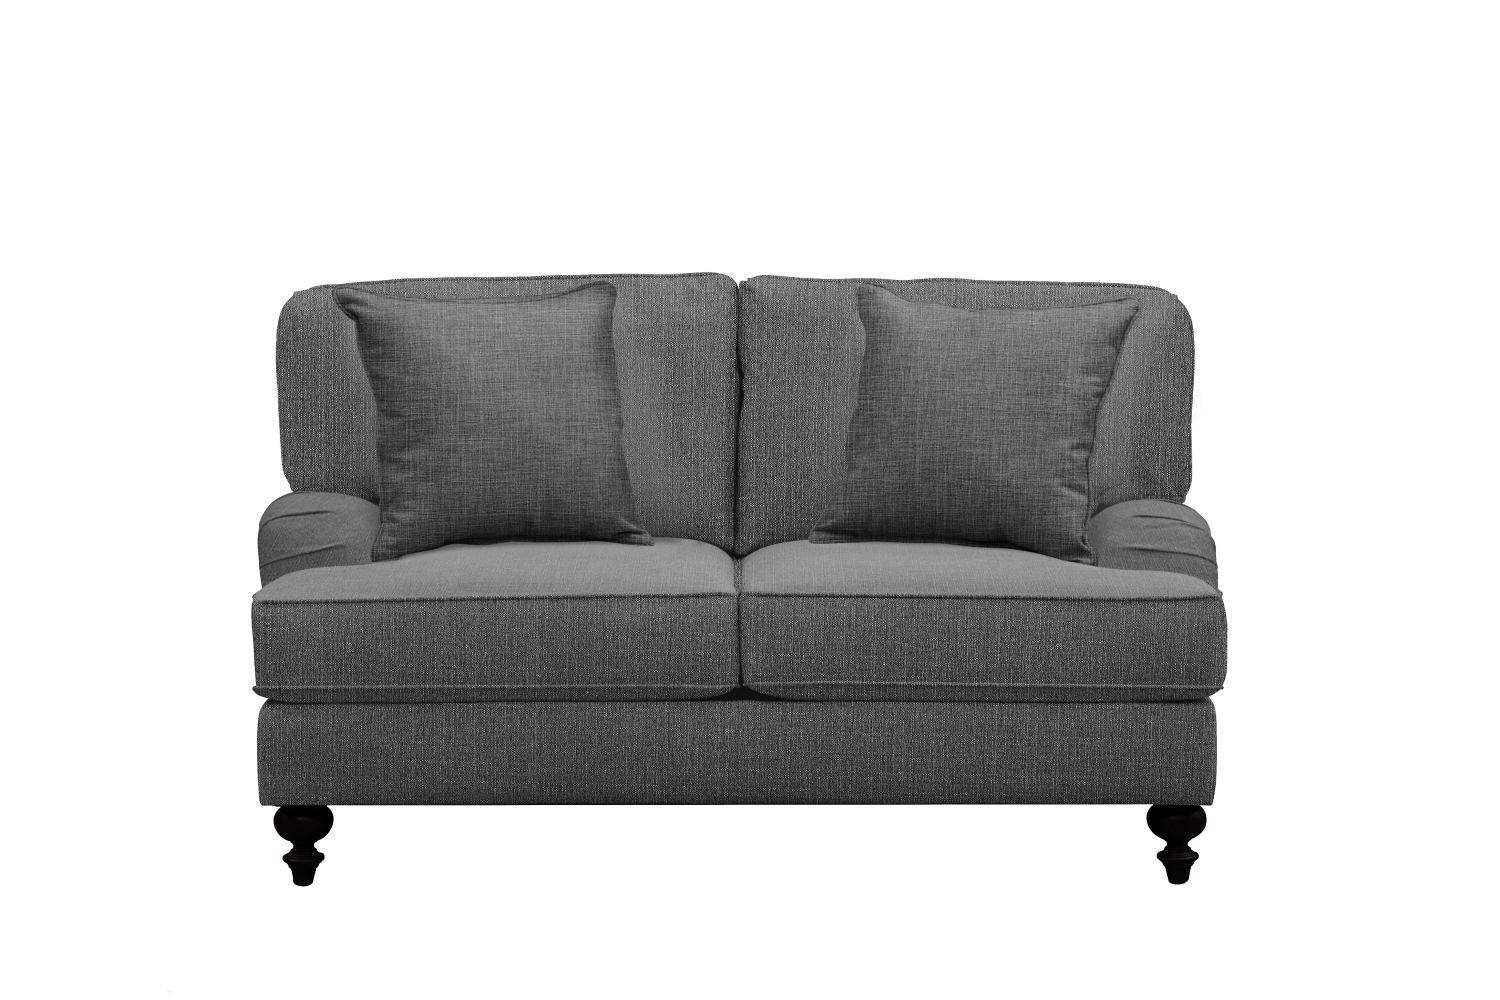 "Living Room Furniture - Avery English Arm Sofa 62"" Depalma Charcoal w/ Depalma Charcoal Pillow"